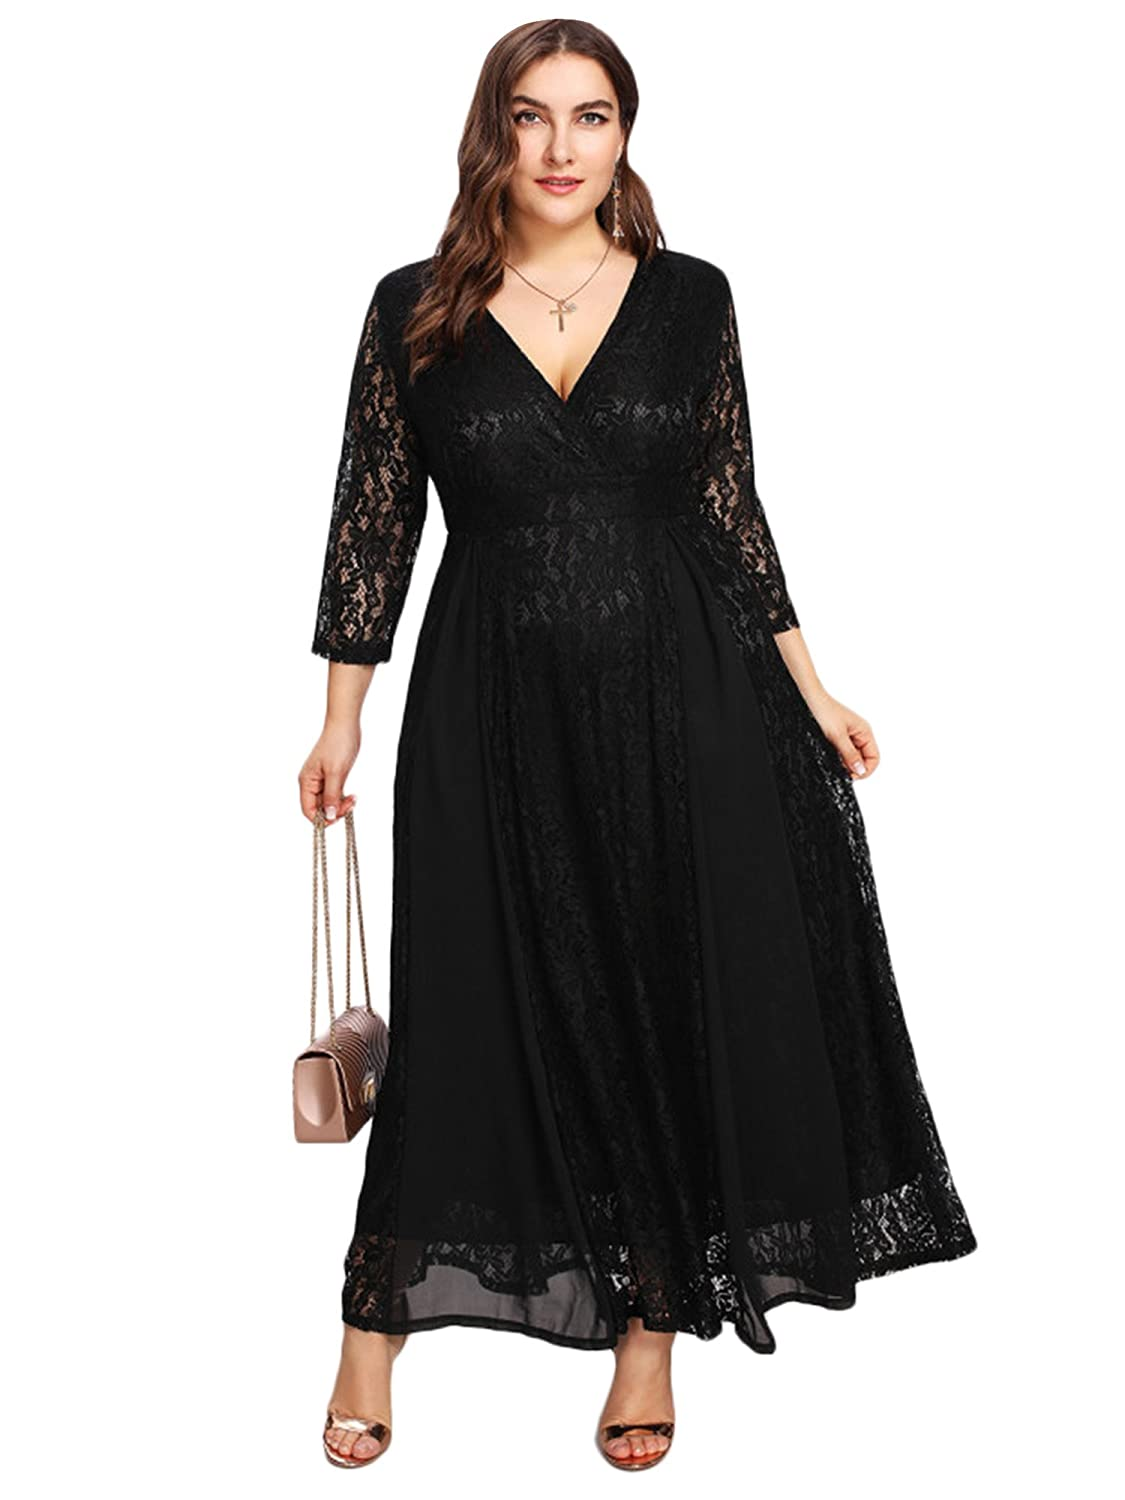 fac5bca5016f Amazon.com: ESPRLIA Women's Plus Size High Waist Lace Overlay Maxi Evening  Dresses: Clothing